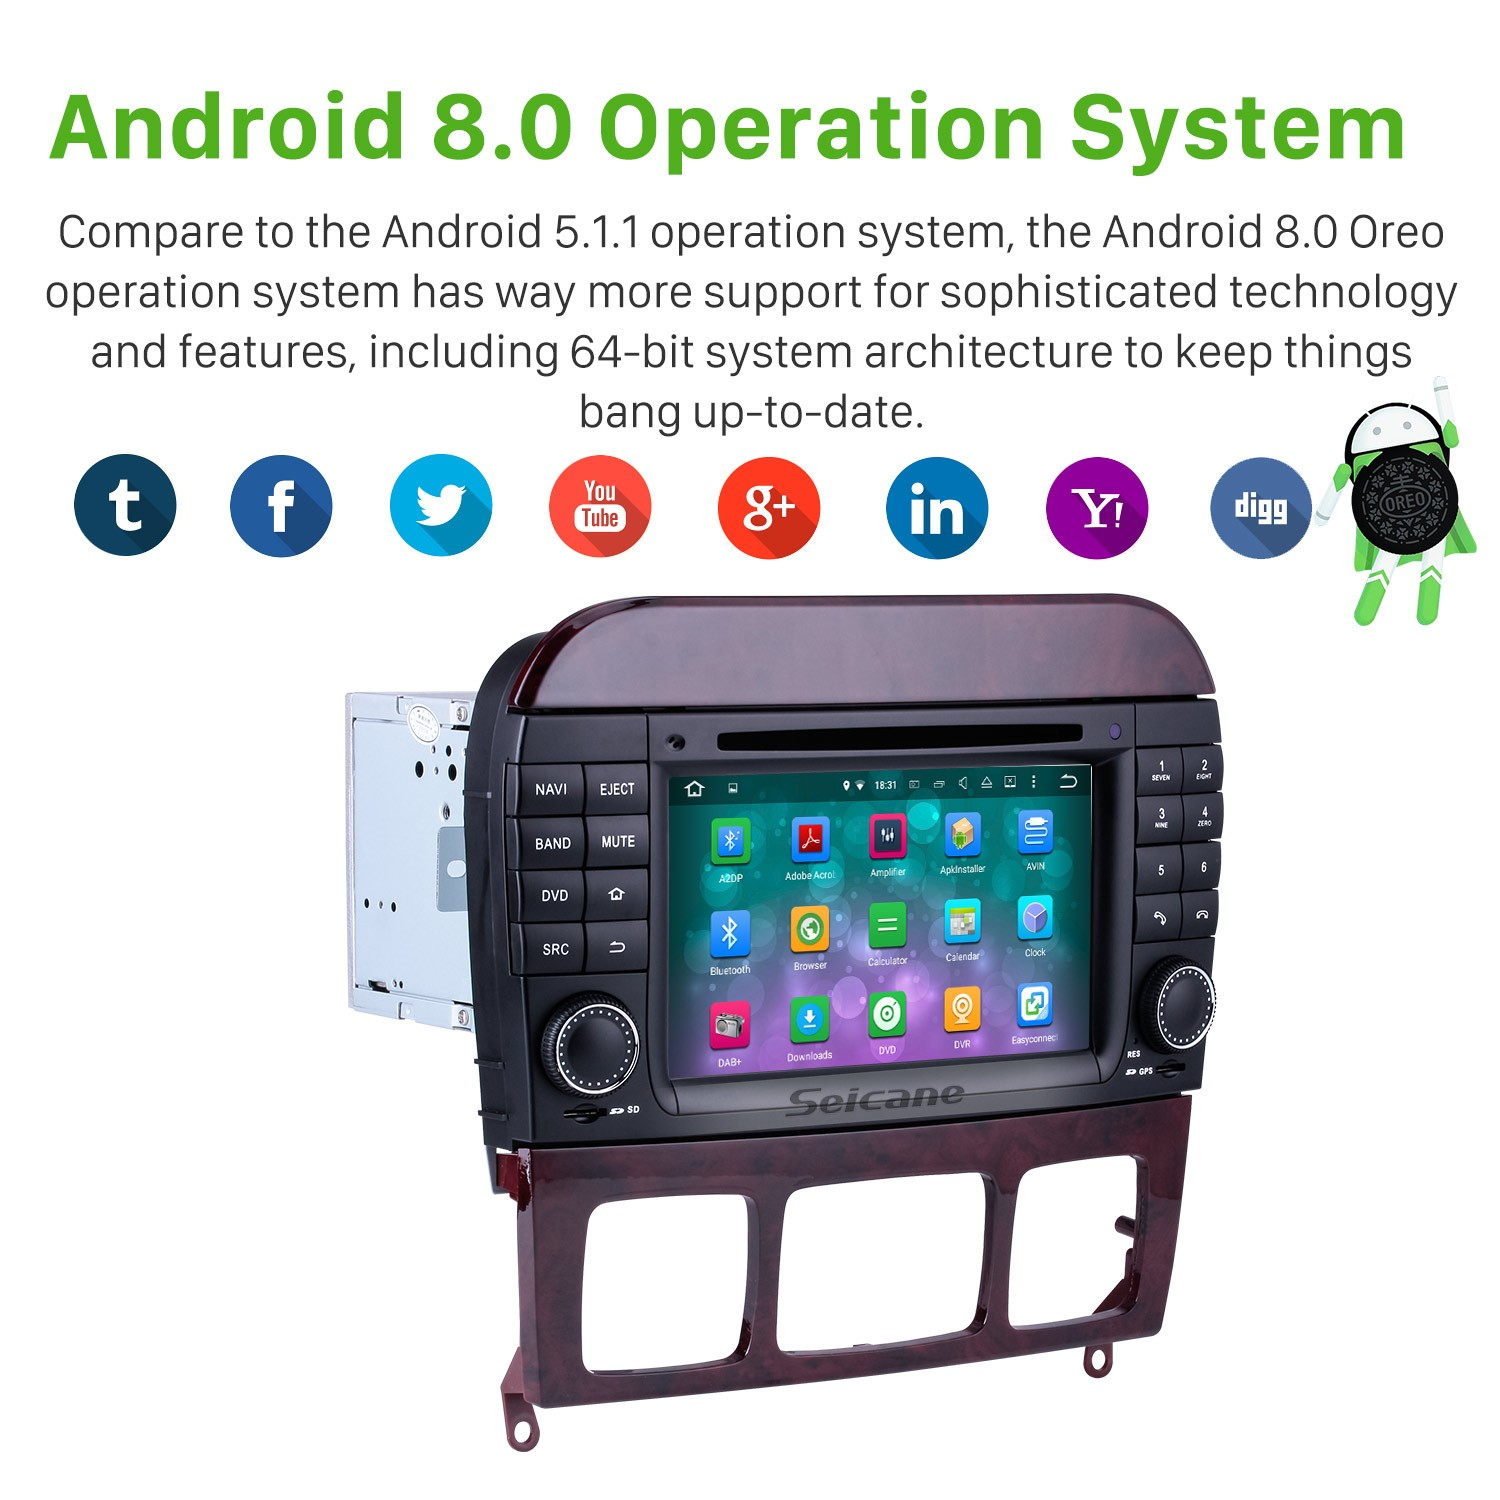 aftermarket android 8 0 gps navigation system for 1998-2005 mercedes-benz s-class  w220 s280 s320 s350 s400 s430 s500